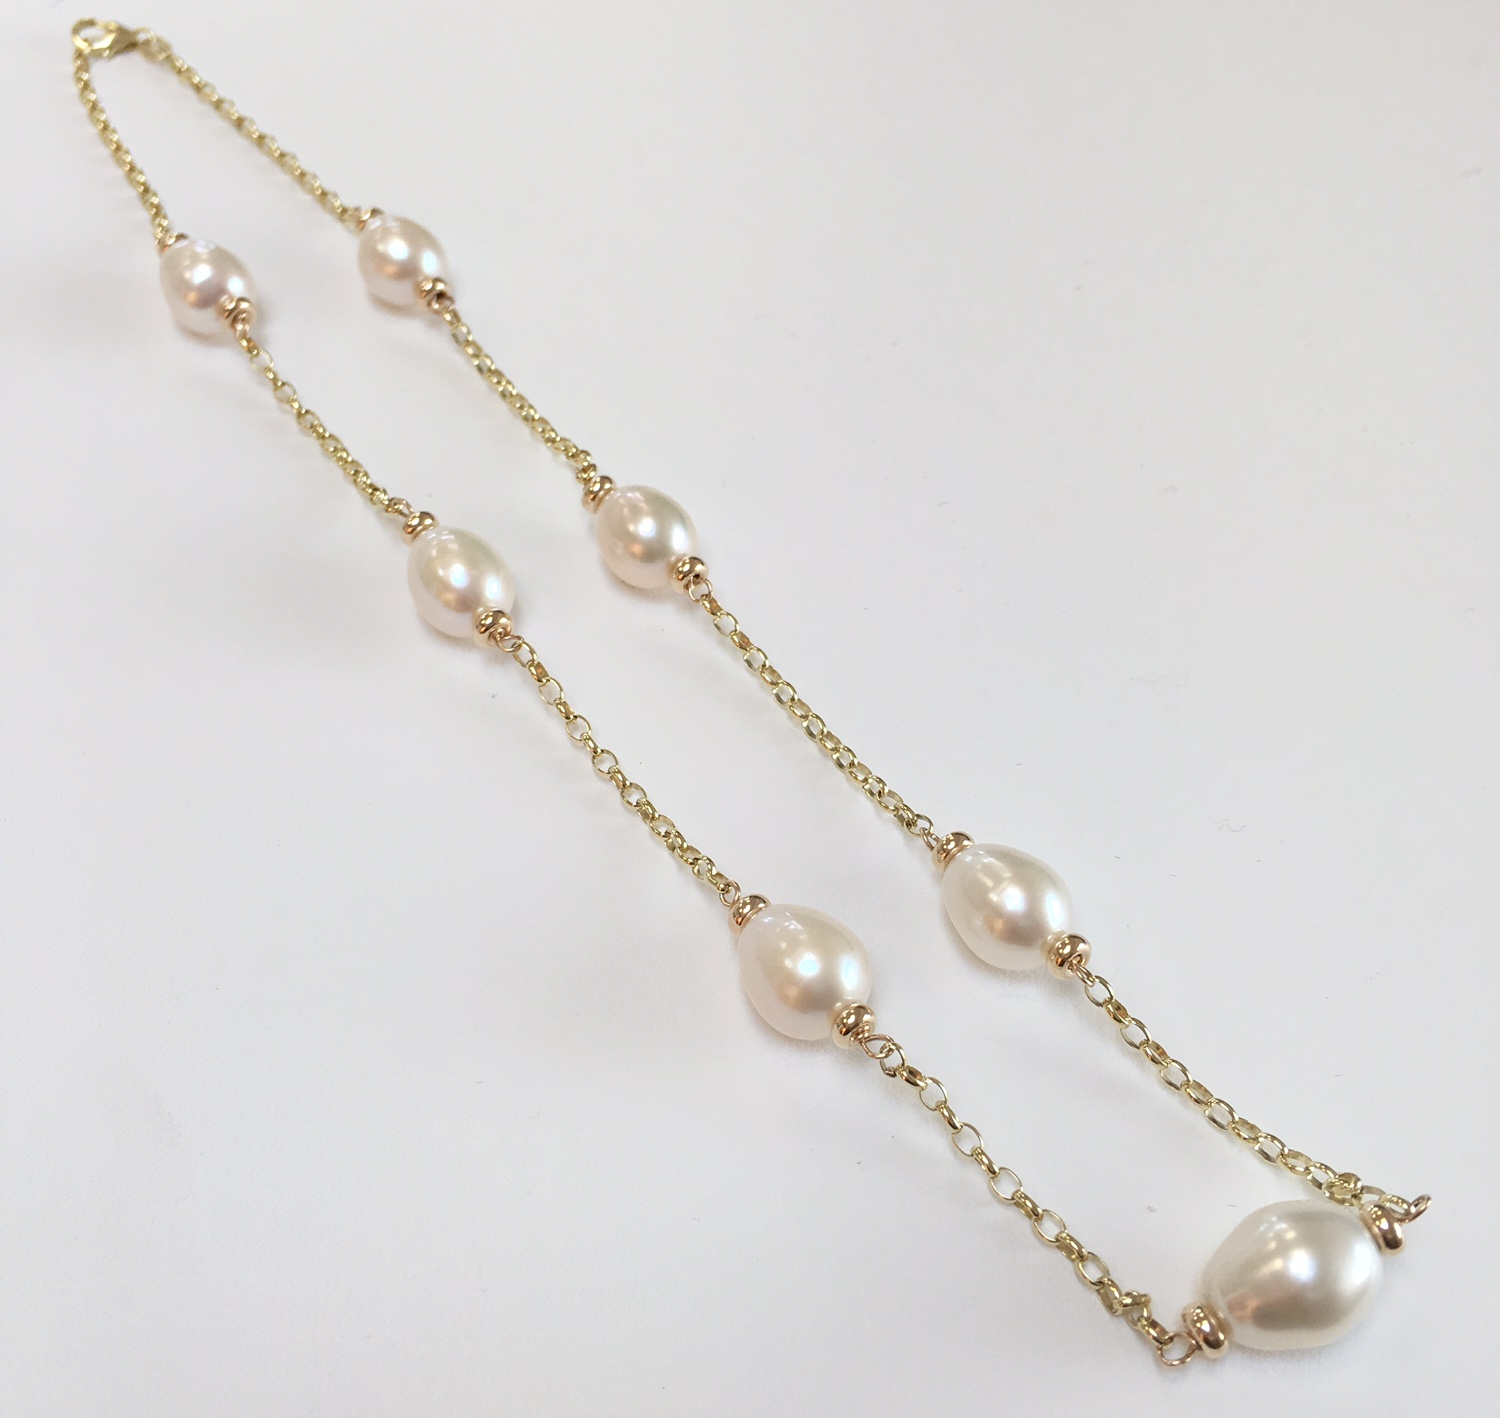 jewellery necklace white freshwater pearl gold fwp products with clasp round